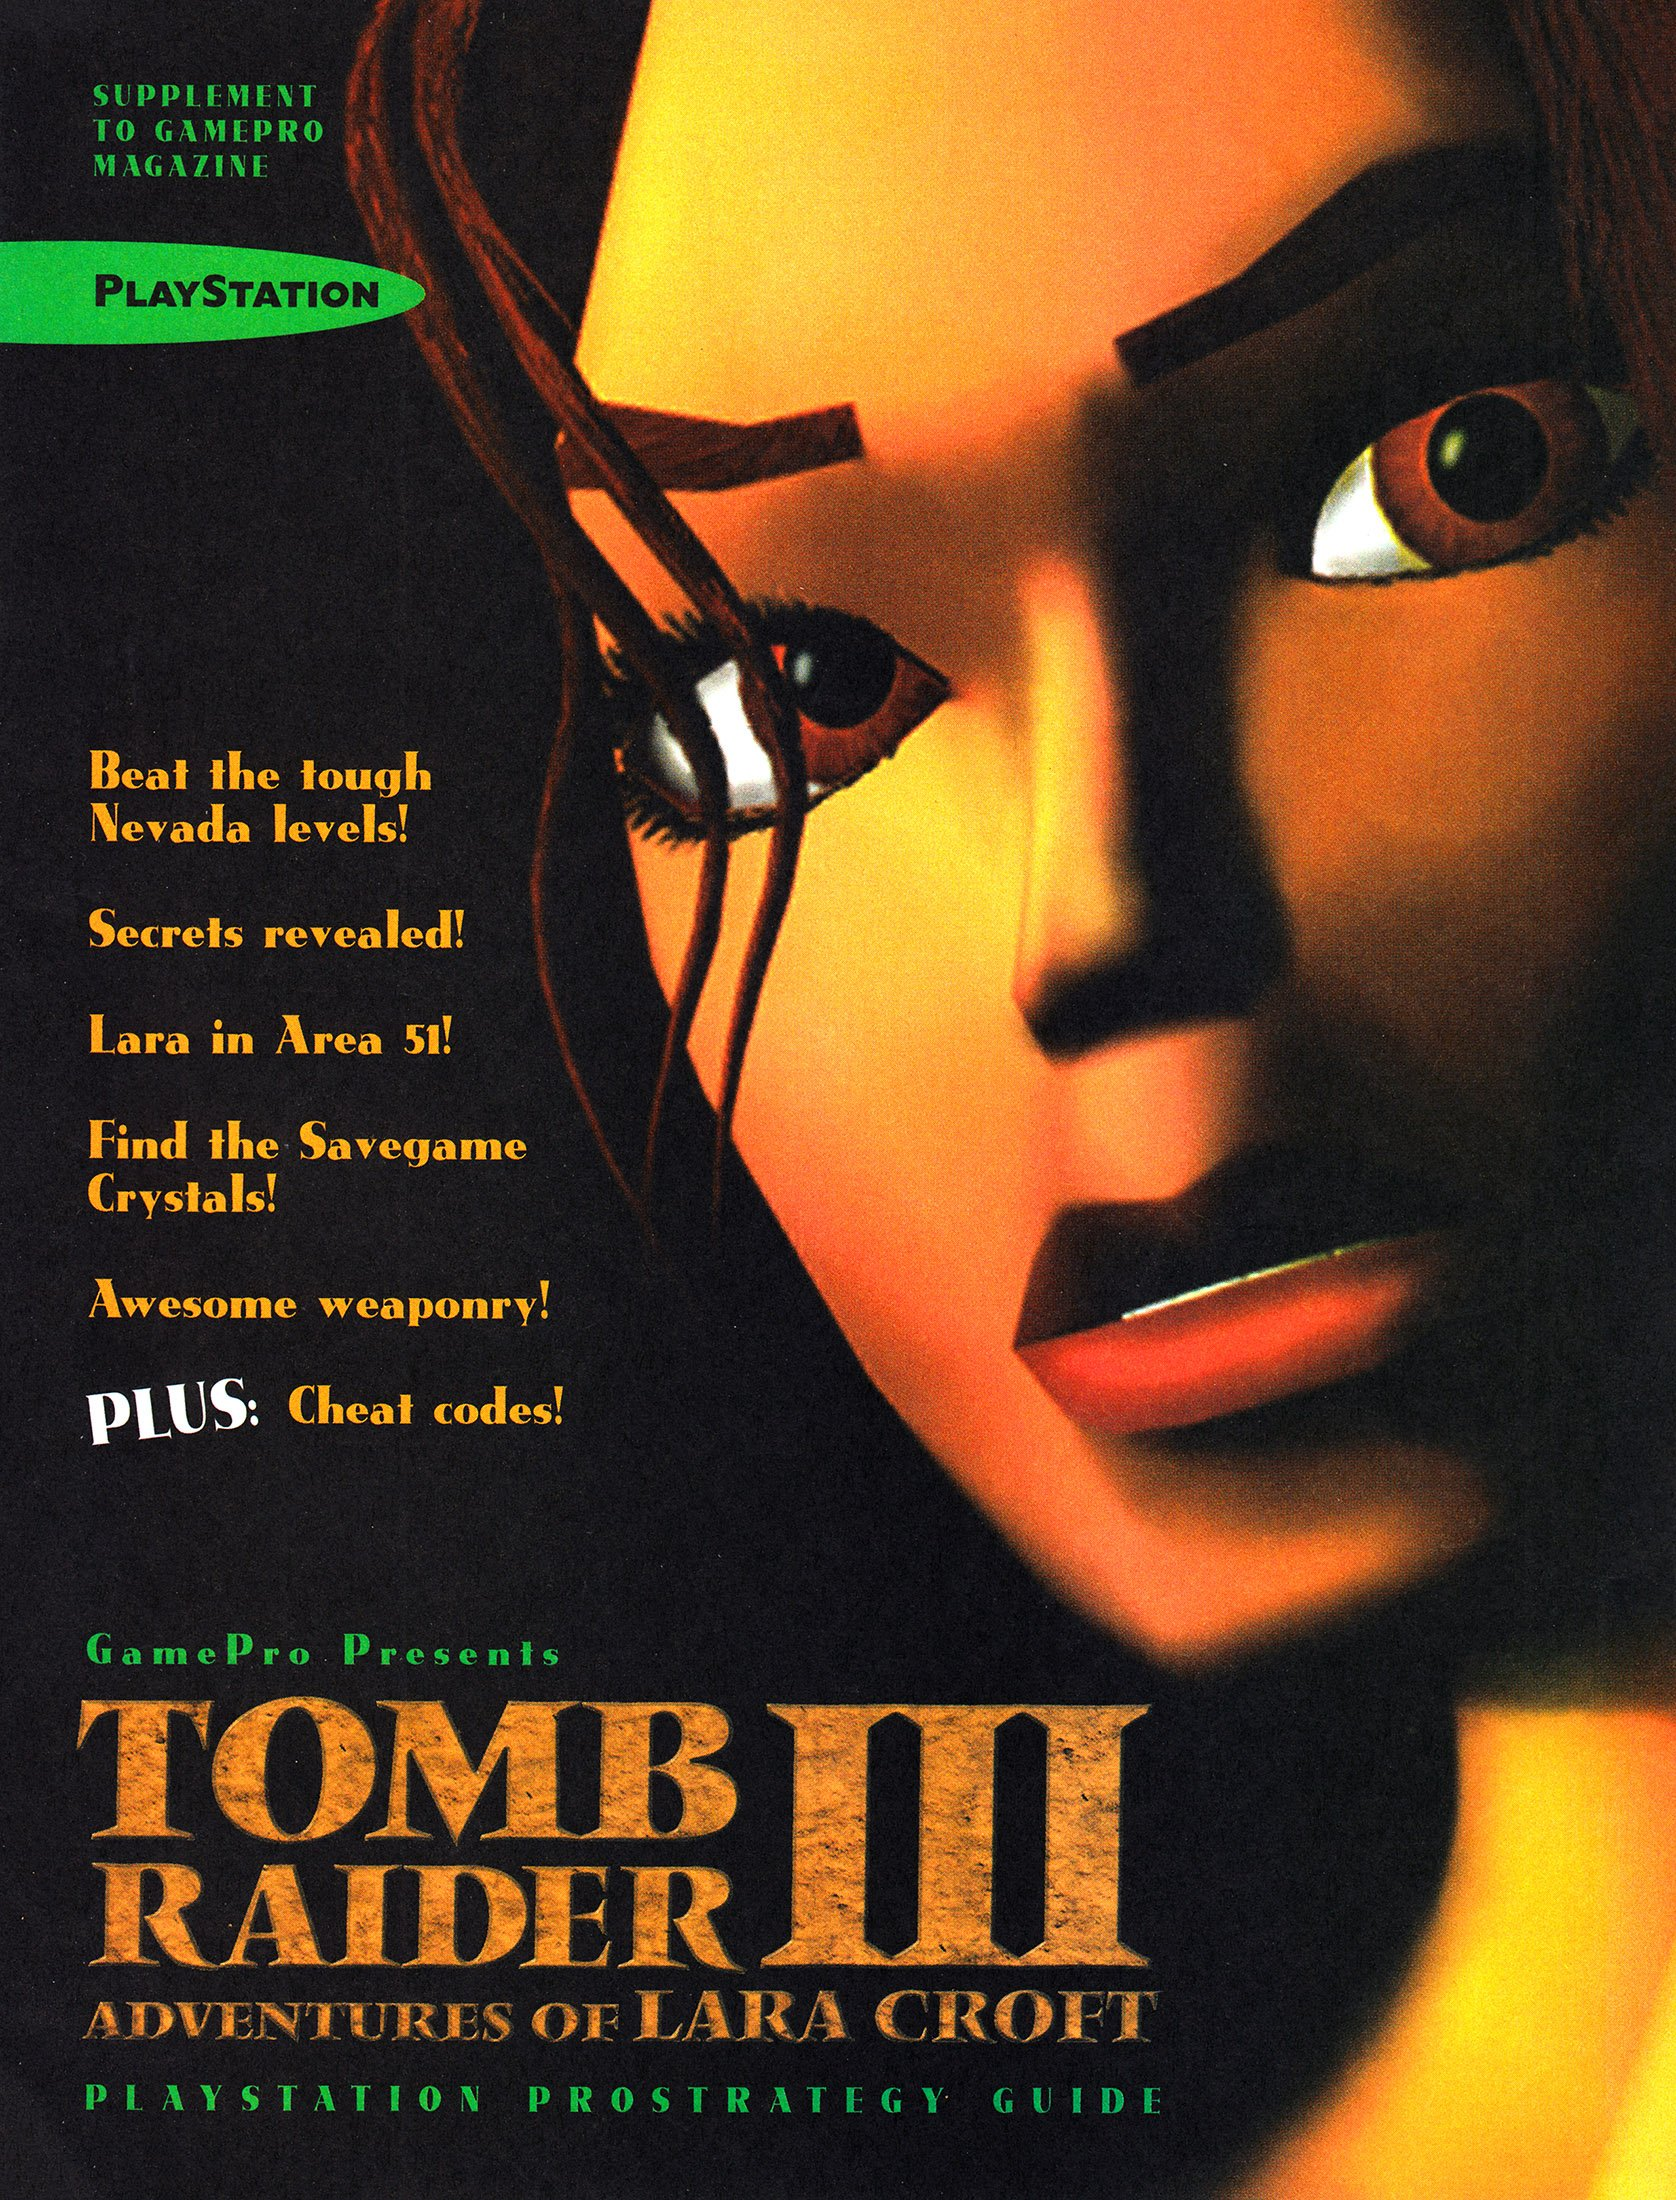 Gamepro March 1999 Tomb Raider Ii Prostrategy Guide Gamepro